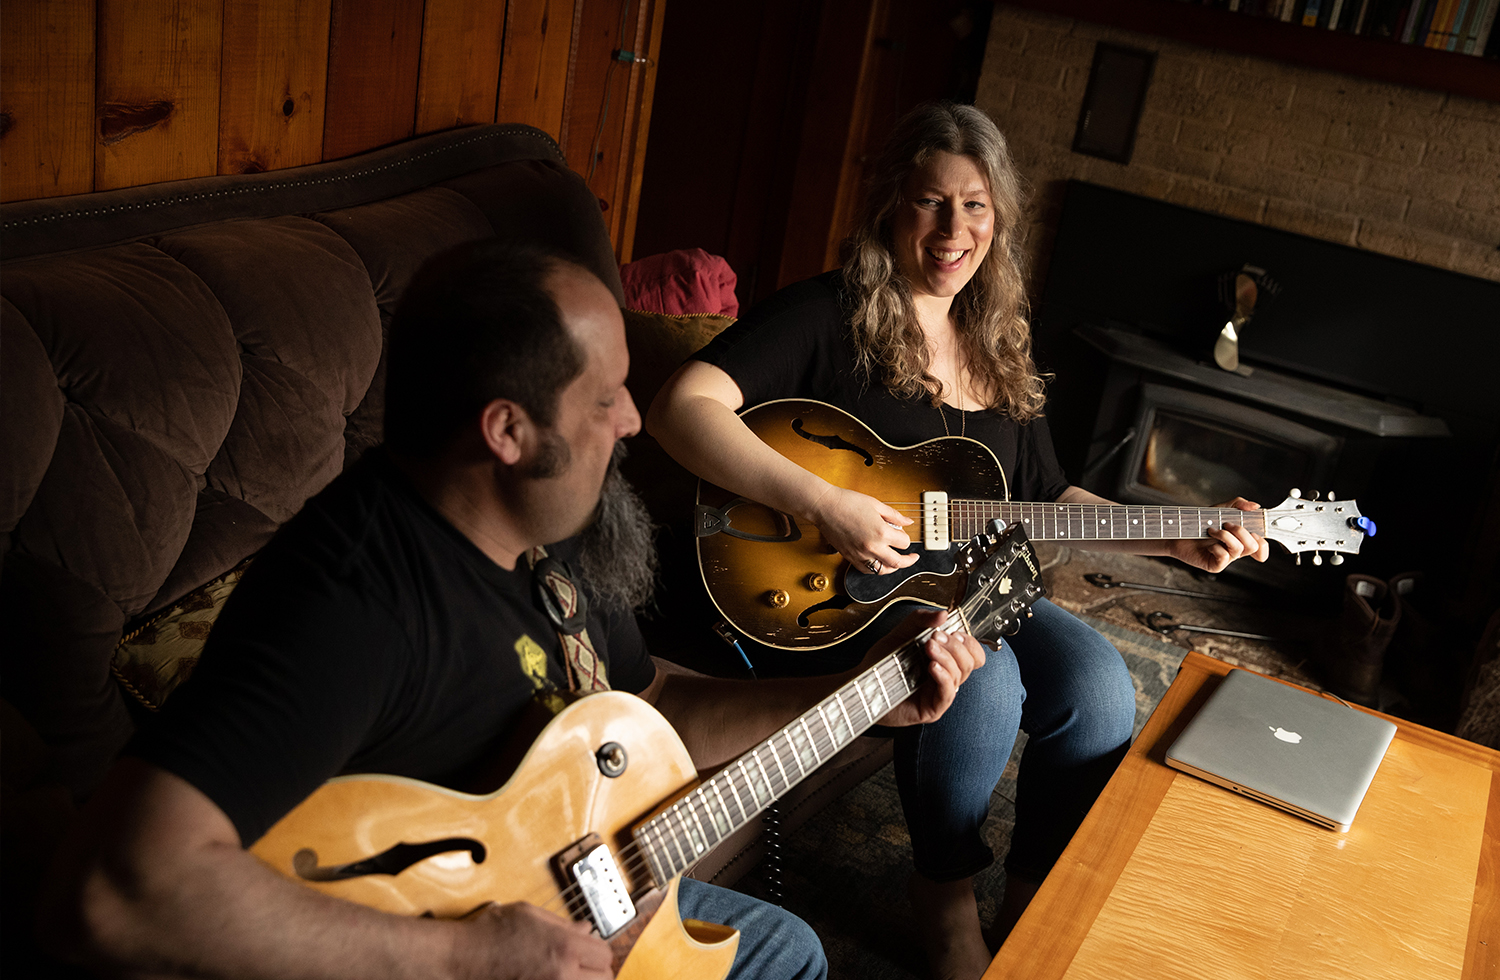 Ruth and husband/guitarist Johnny Leal at home.